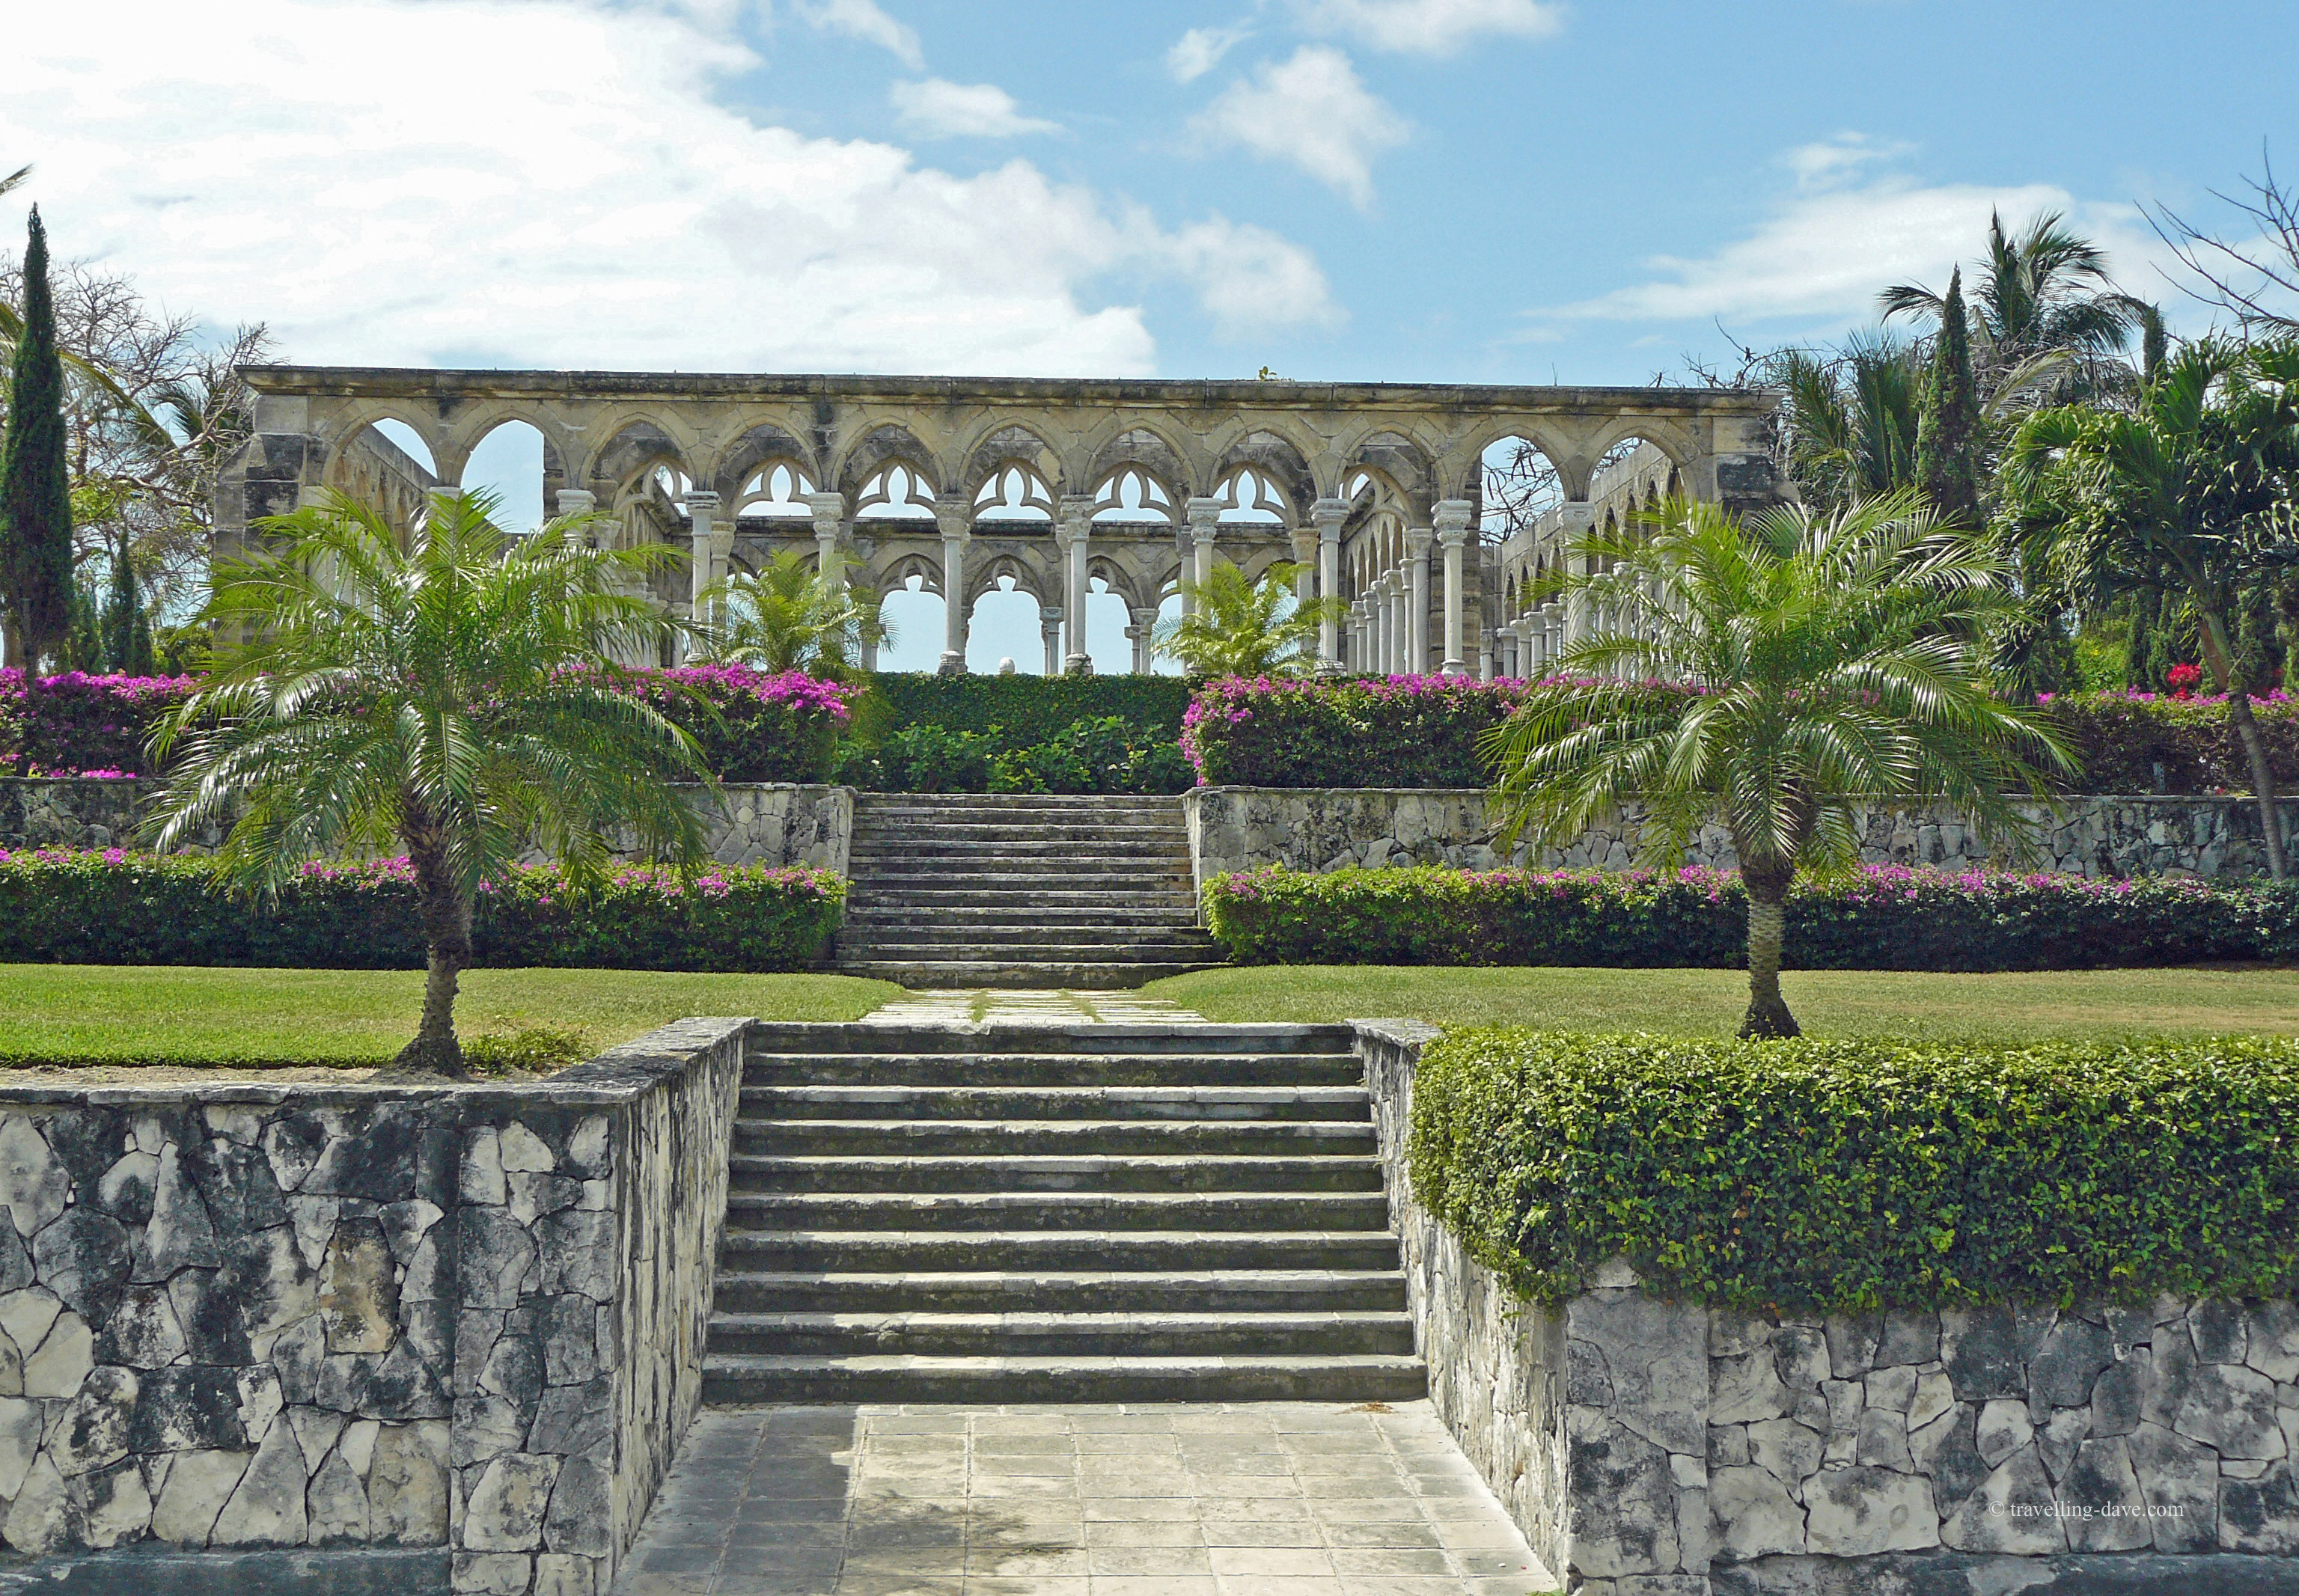 View of Versailles Gardens Cloister in the Bahamas